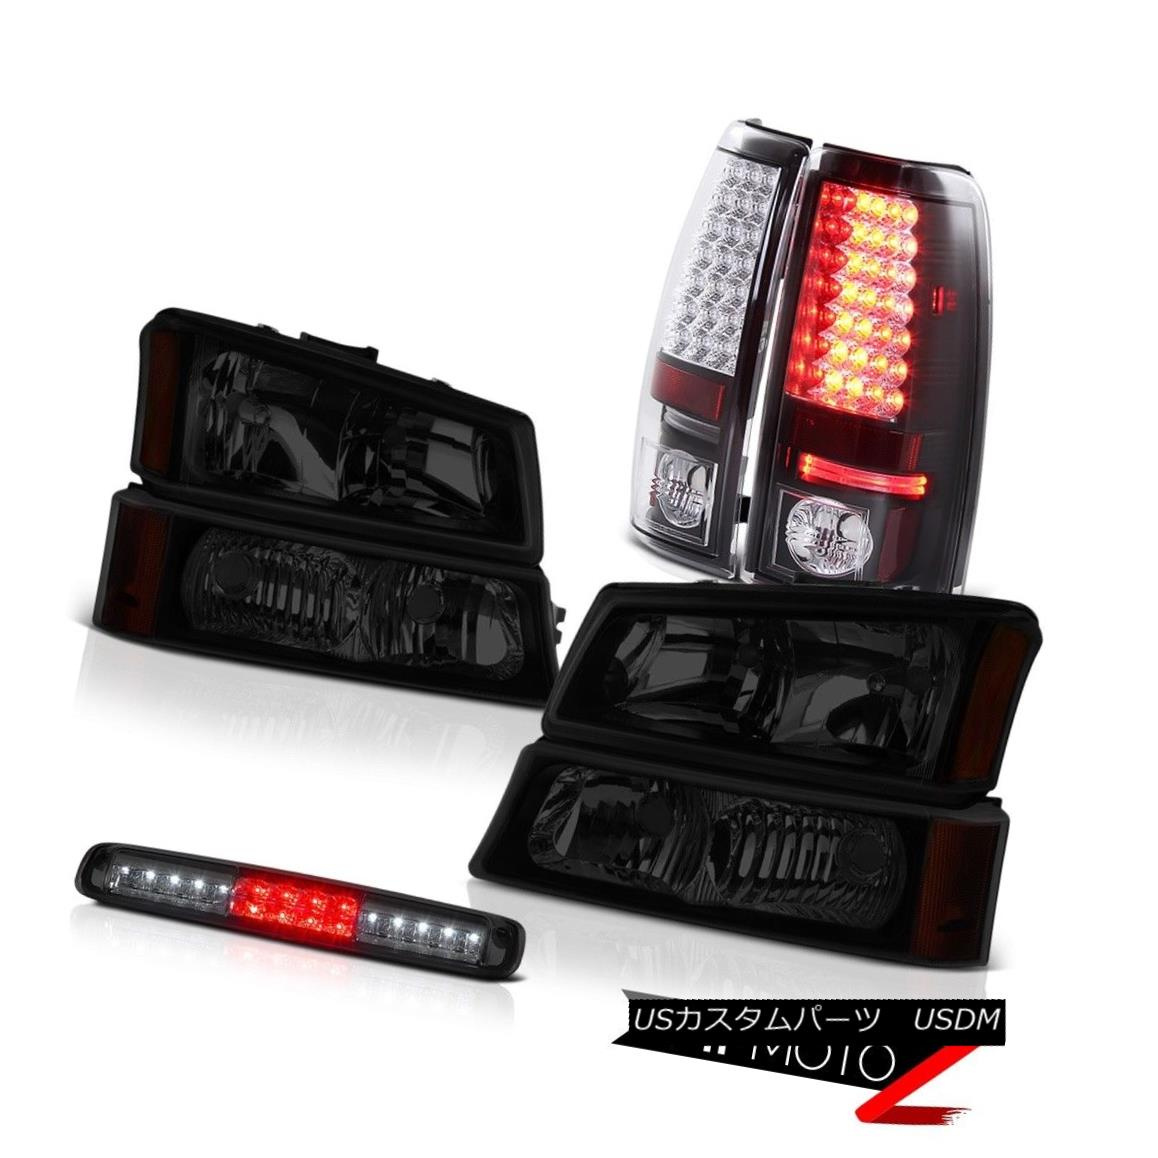 テールライト 03-06 Chevy Silverado 2500Hd Dark Tinted Headlights 3RD Brake Light Tail Lights 03-06 Chevy Silverado 2500Hdダークティンテッドヘッドライト3RDブレーキライトテールライト